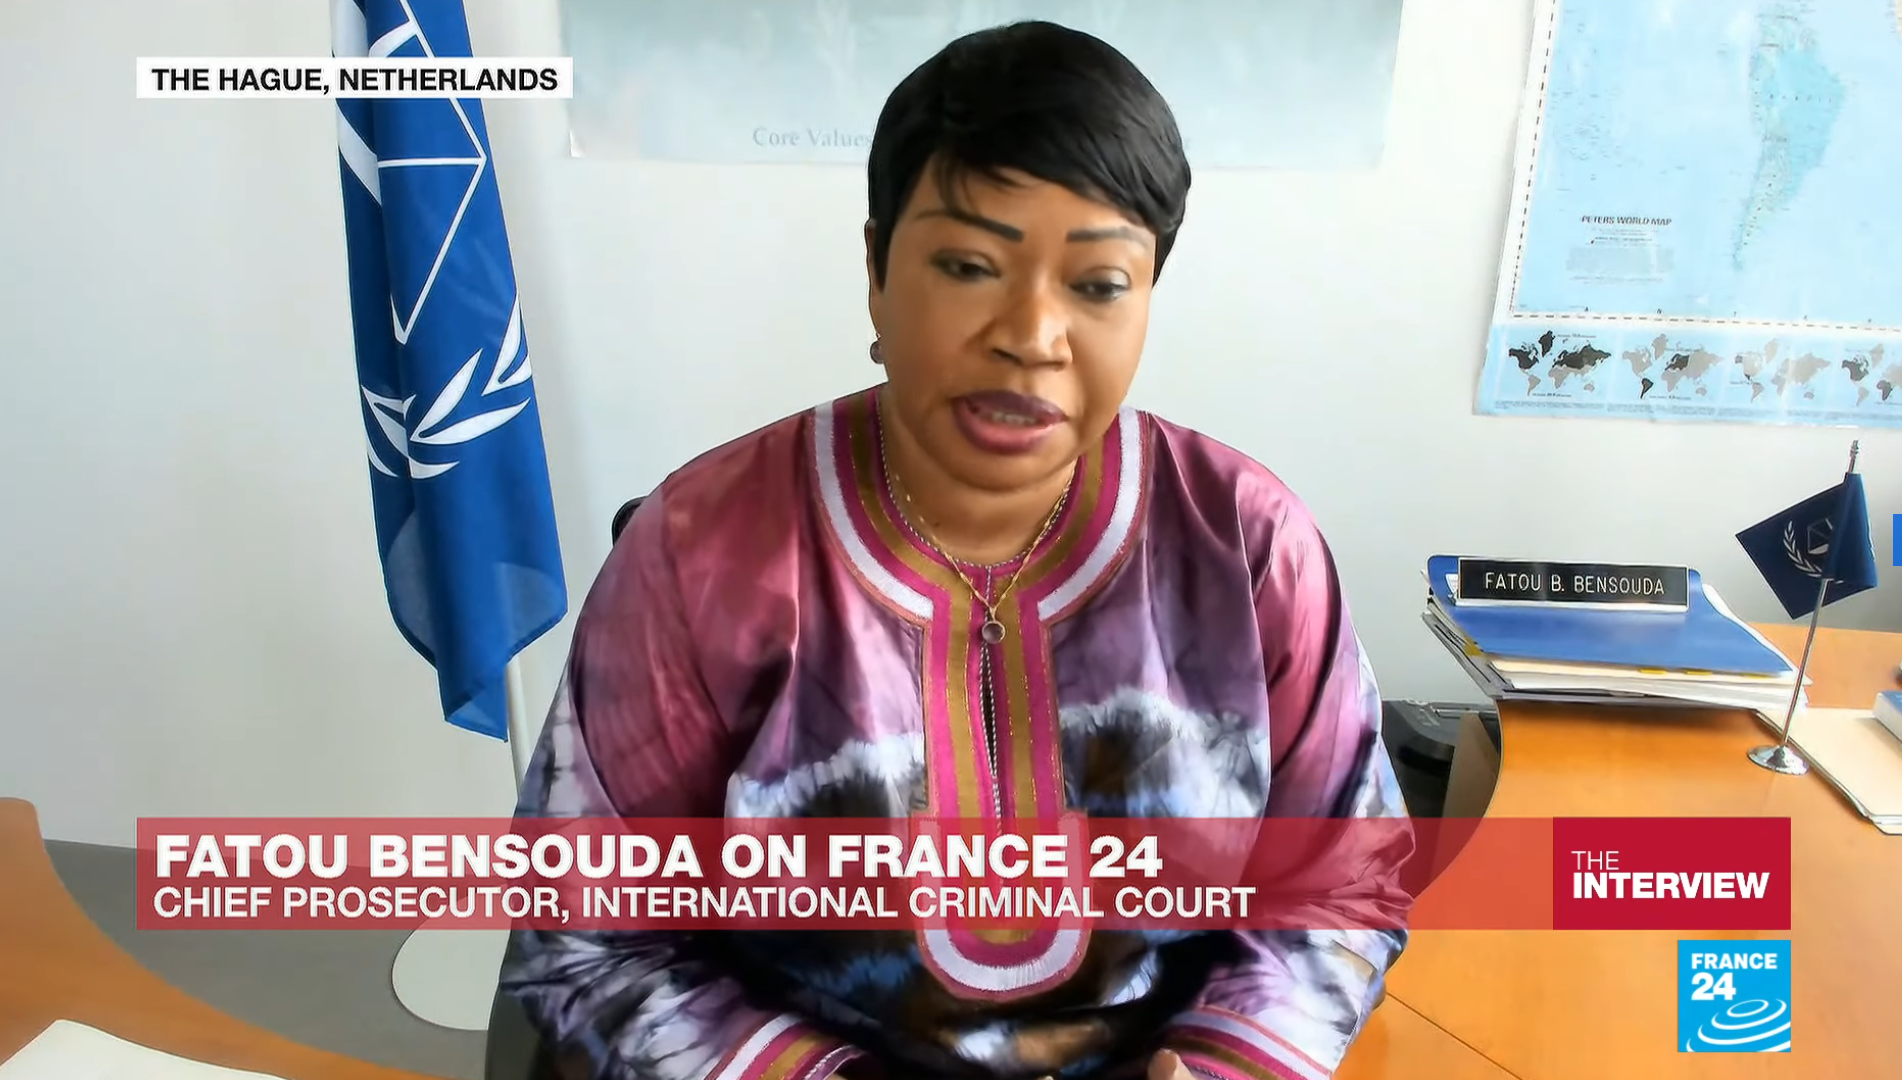 Fatou Bensouda, the chief prosecutor of the International Criminal Court (ICC), speaks to FRANCE 24's Marc Perelman, July 2 2020.